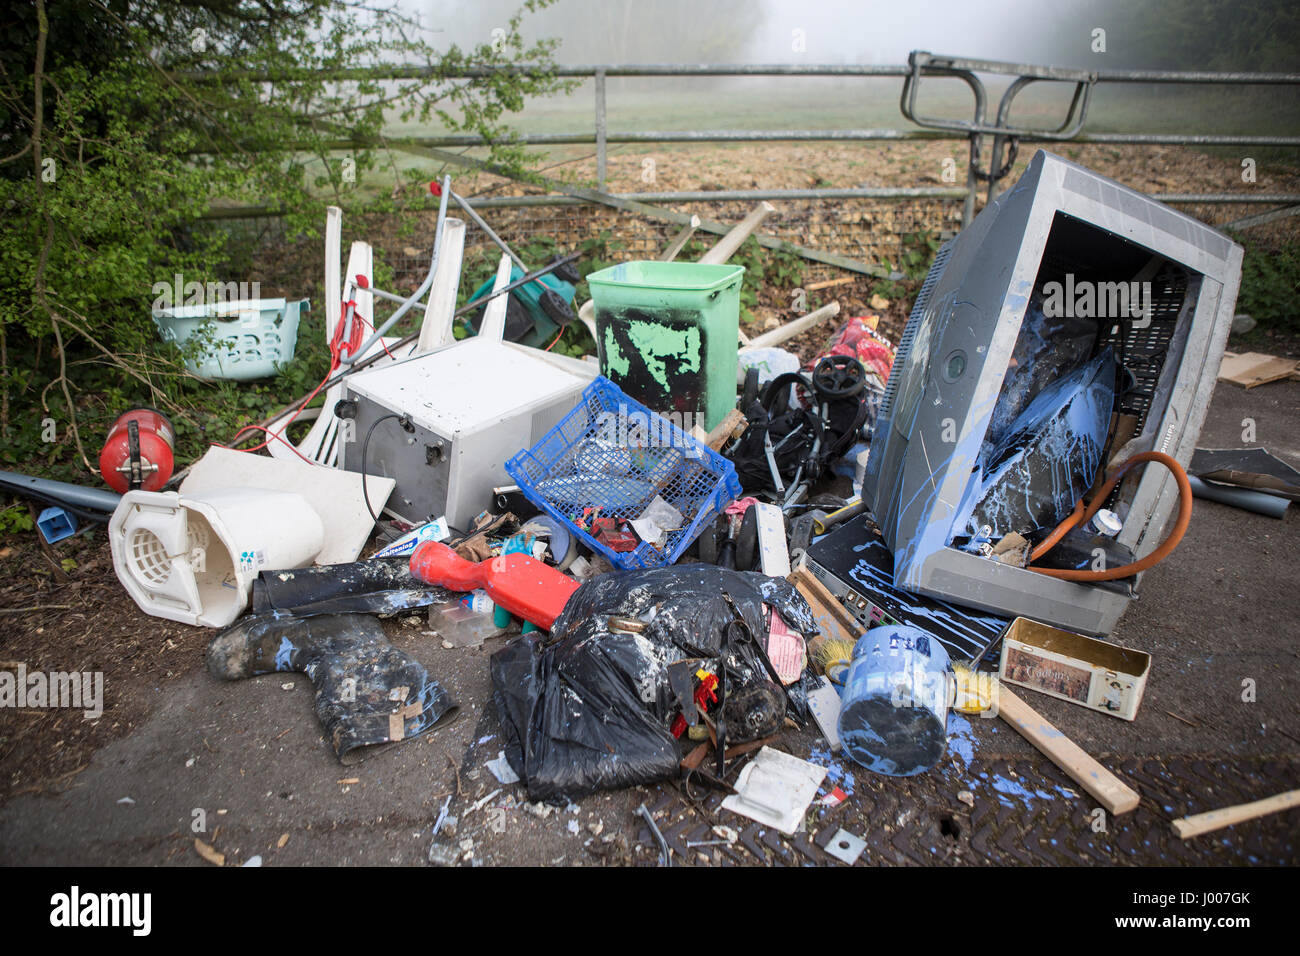 Waste dumped in the Wiltshire countryside, an illegal social issue, fly tipping causing environmental pollution - Stock Image